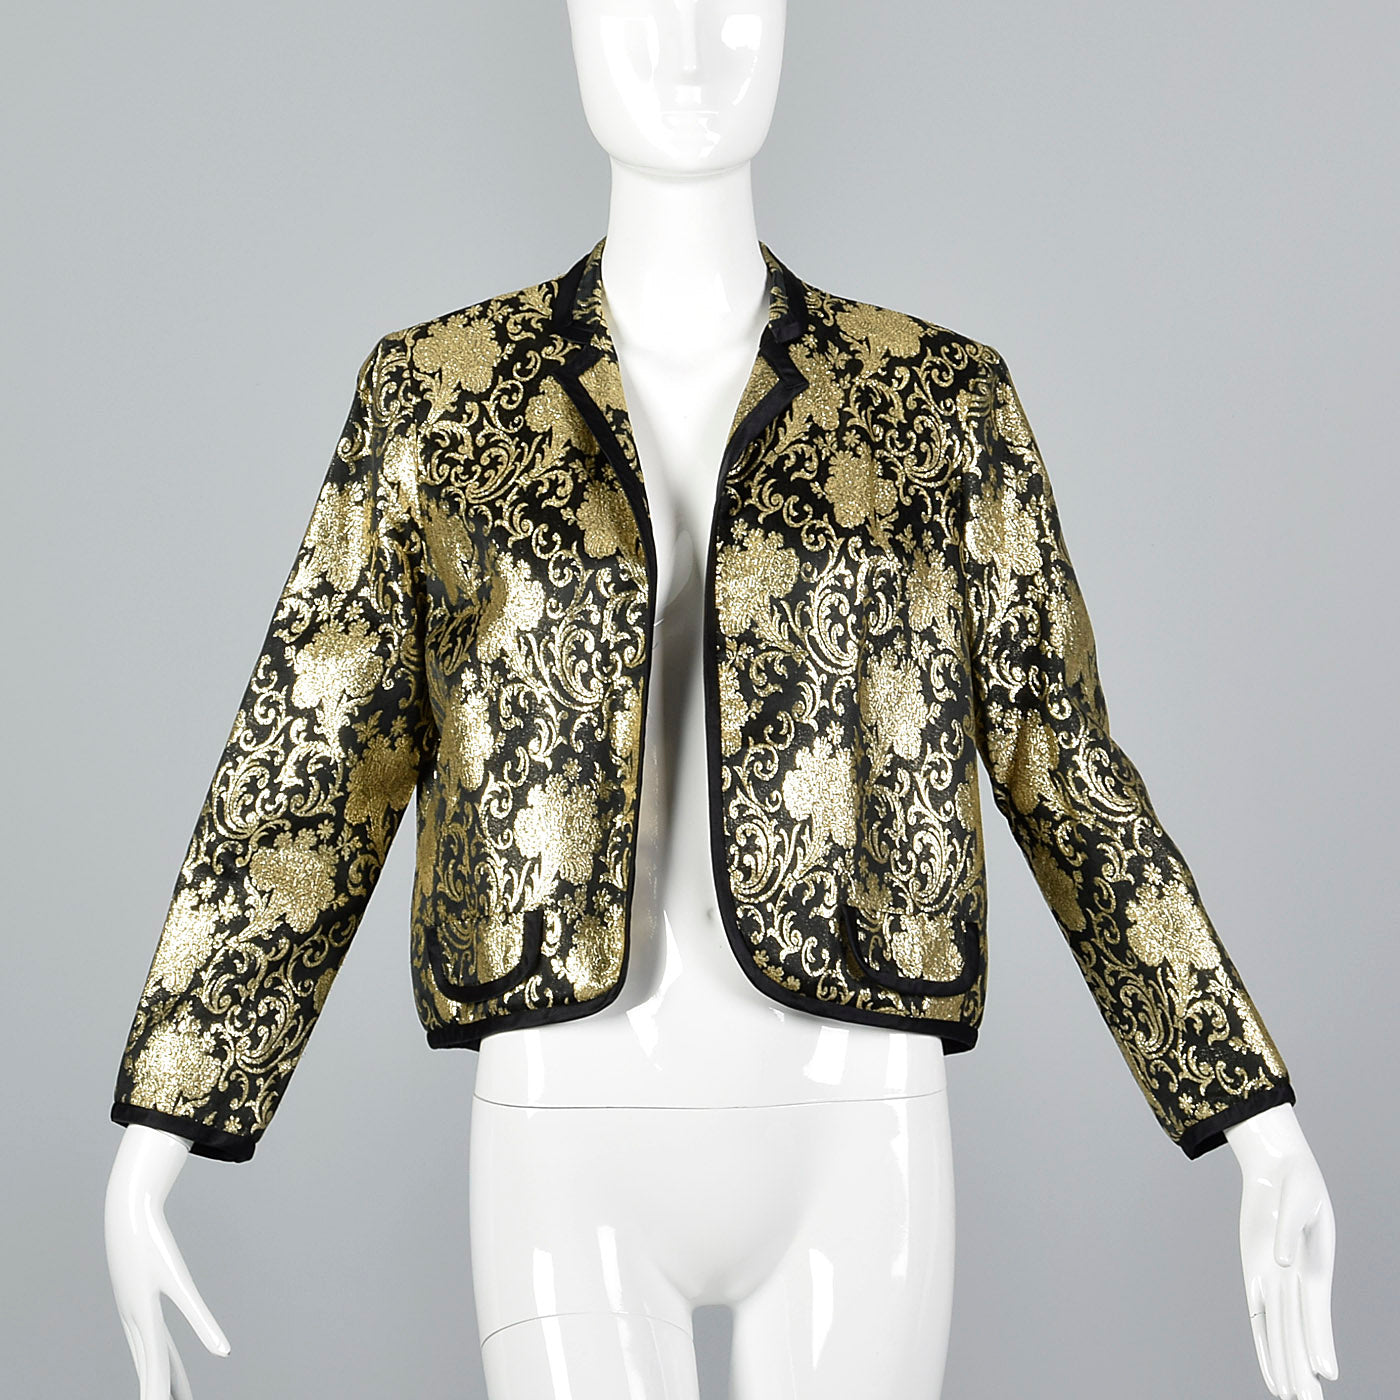 1980s Lillie Rubin Black and Metallic Gold Brocade Bolero Jacket